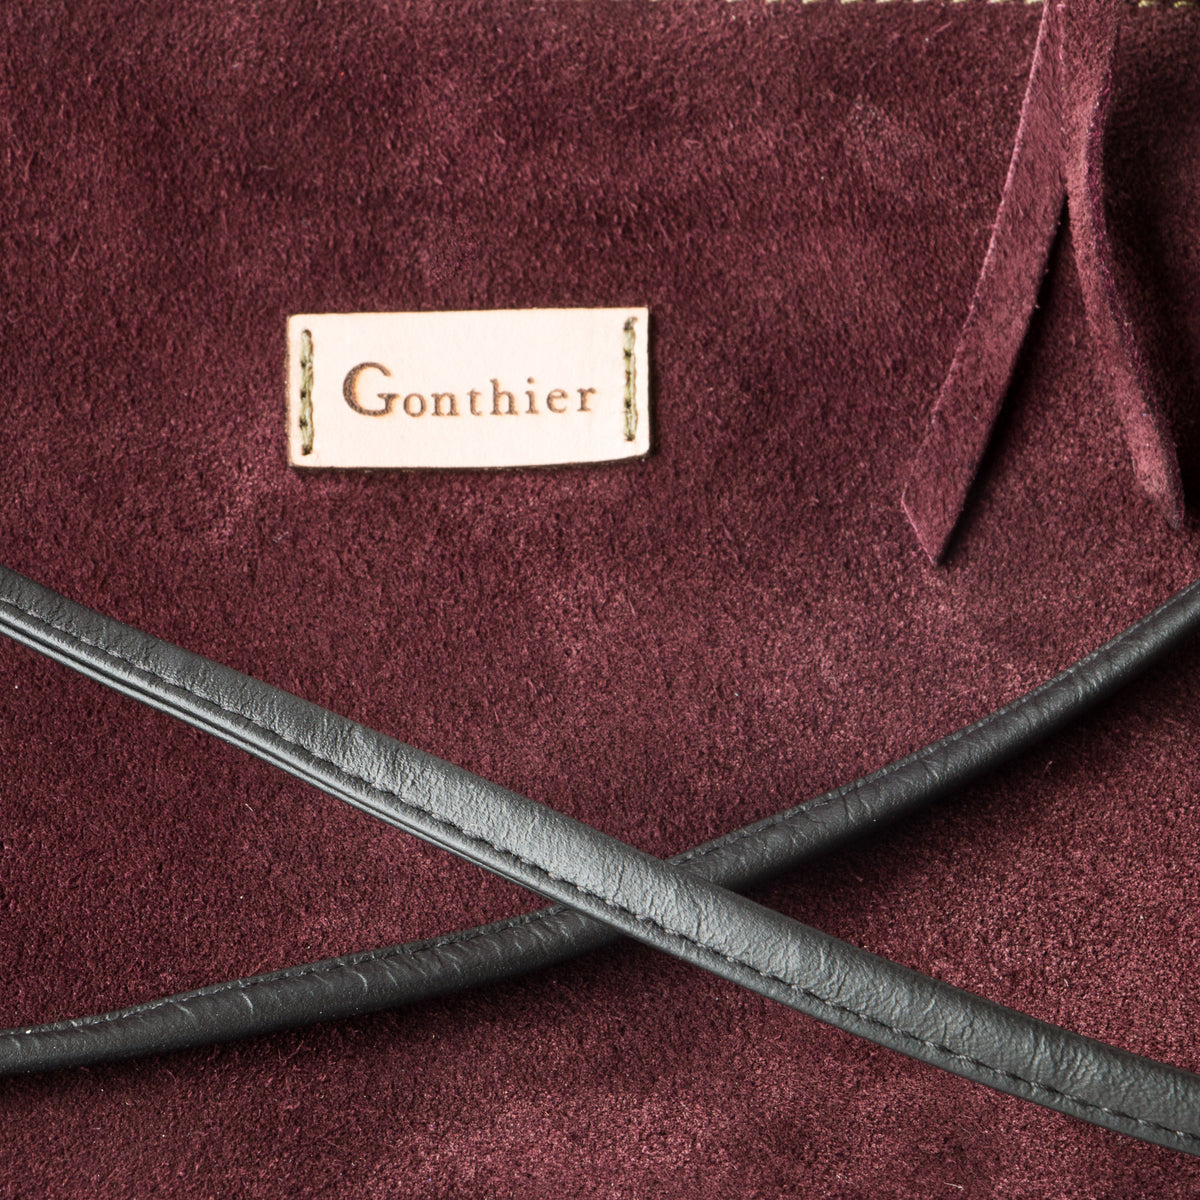 Calfskin Detail - Bordeaux & Khaki - Handmade Small Shoulder Bag in Suede Calfskin - Sold by Chic & Basta